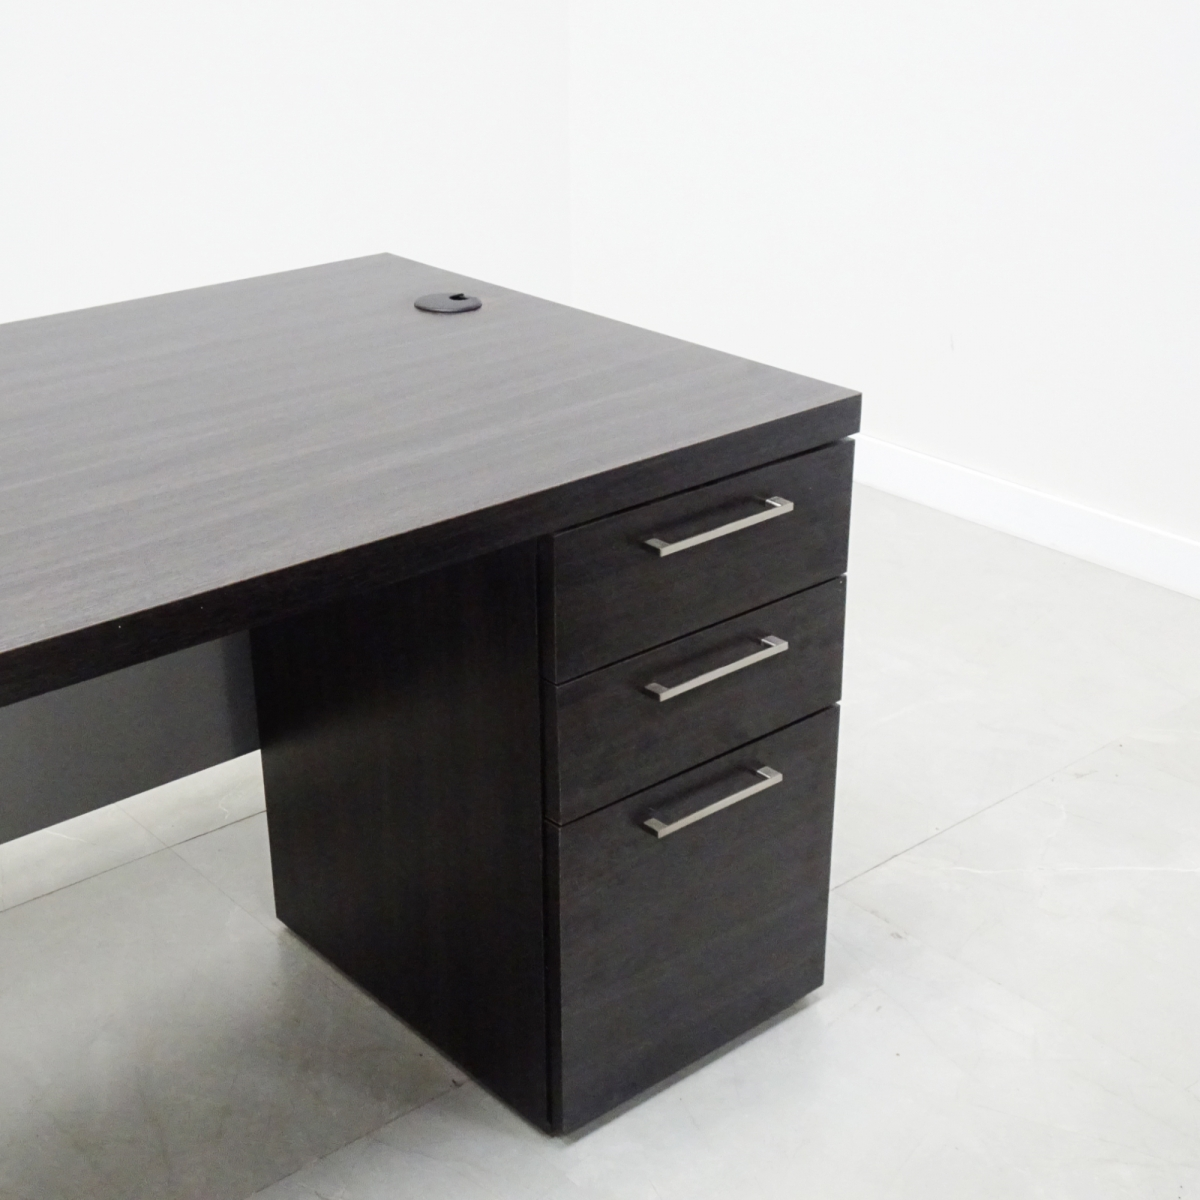 Dallas Laminate Top Desk